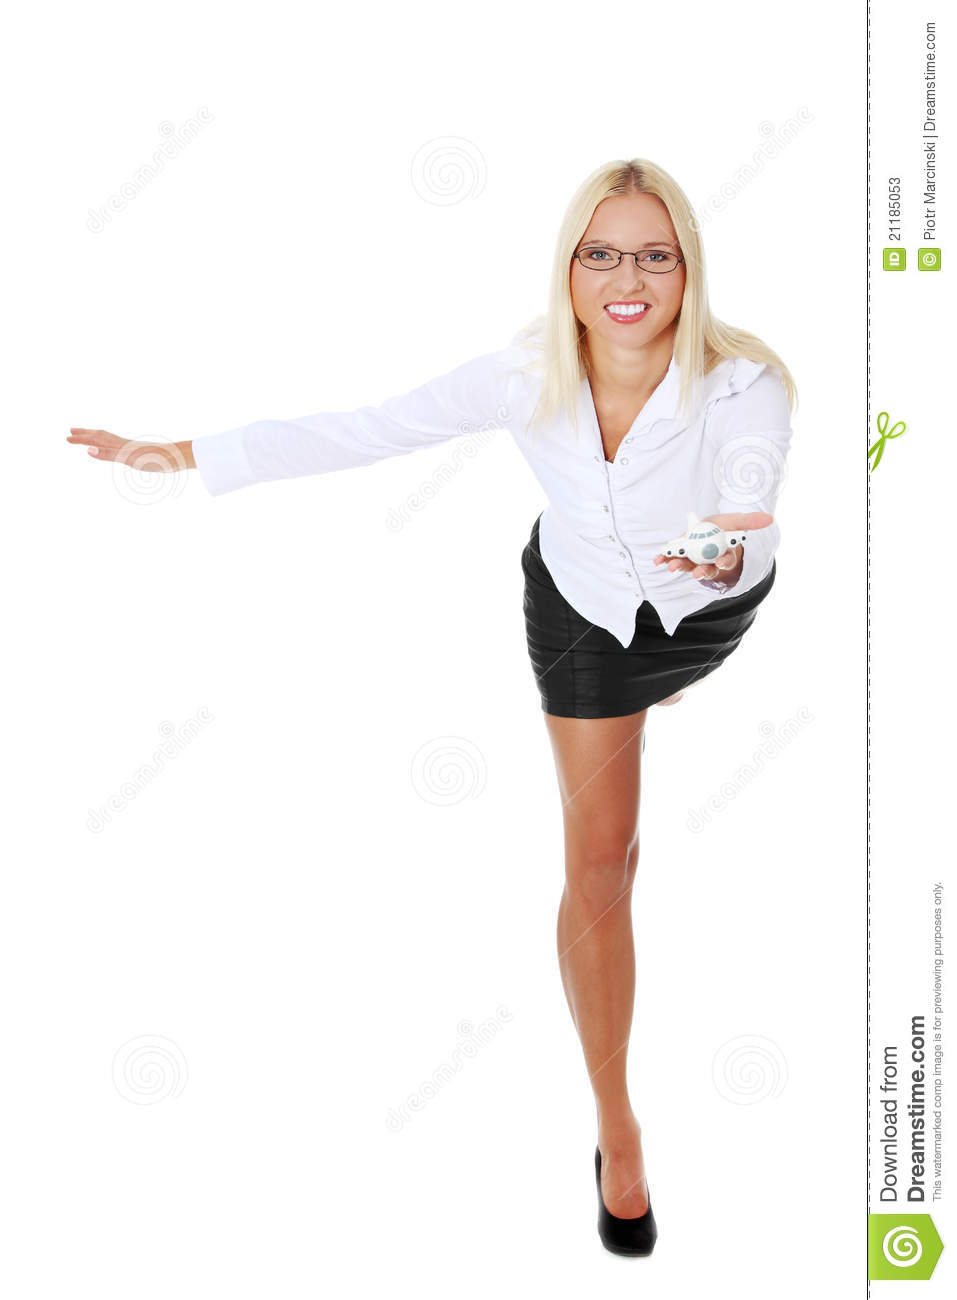 Businesswoman holding a plane toy.